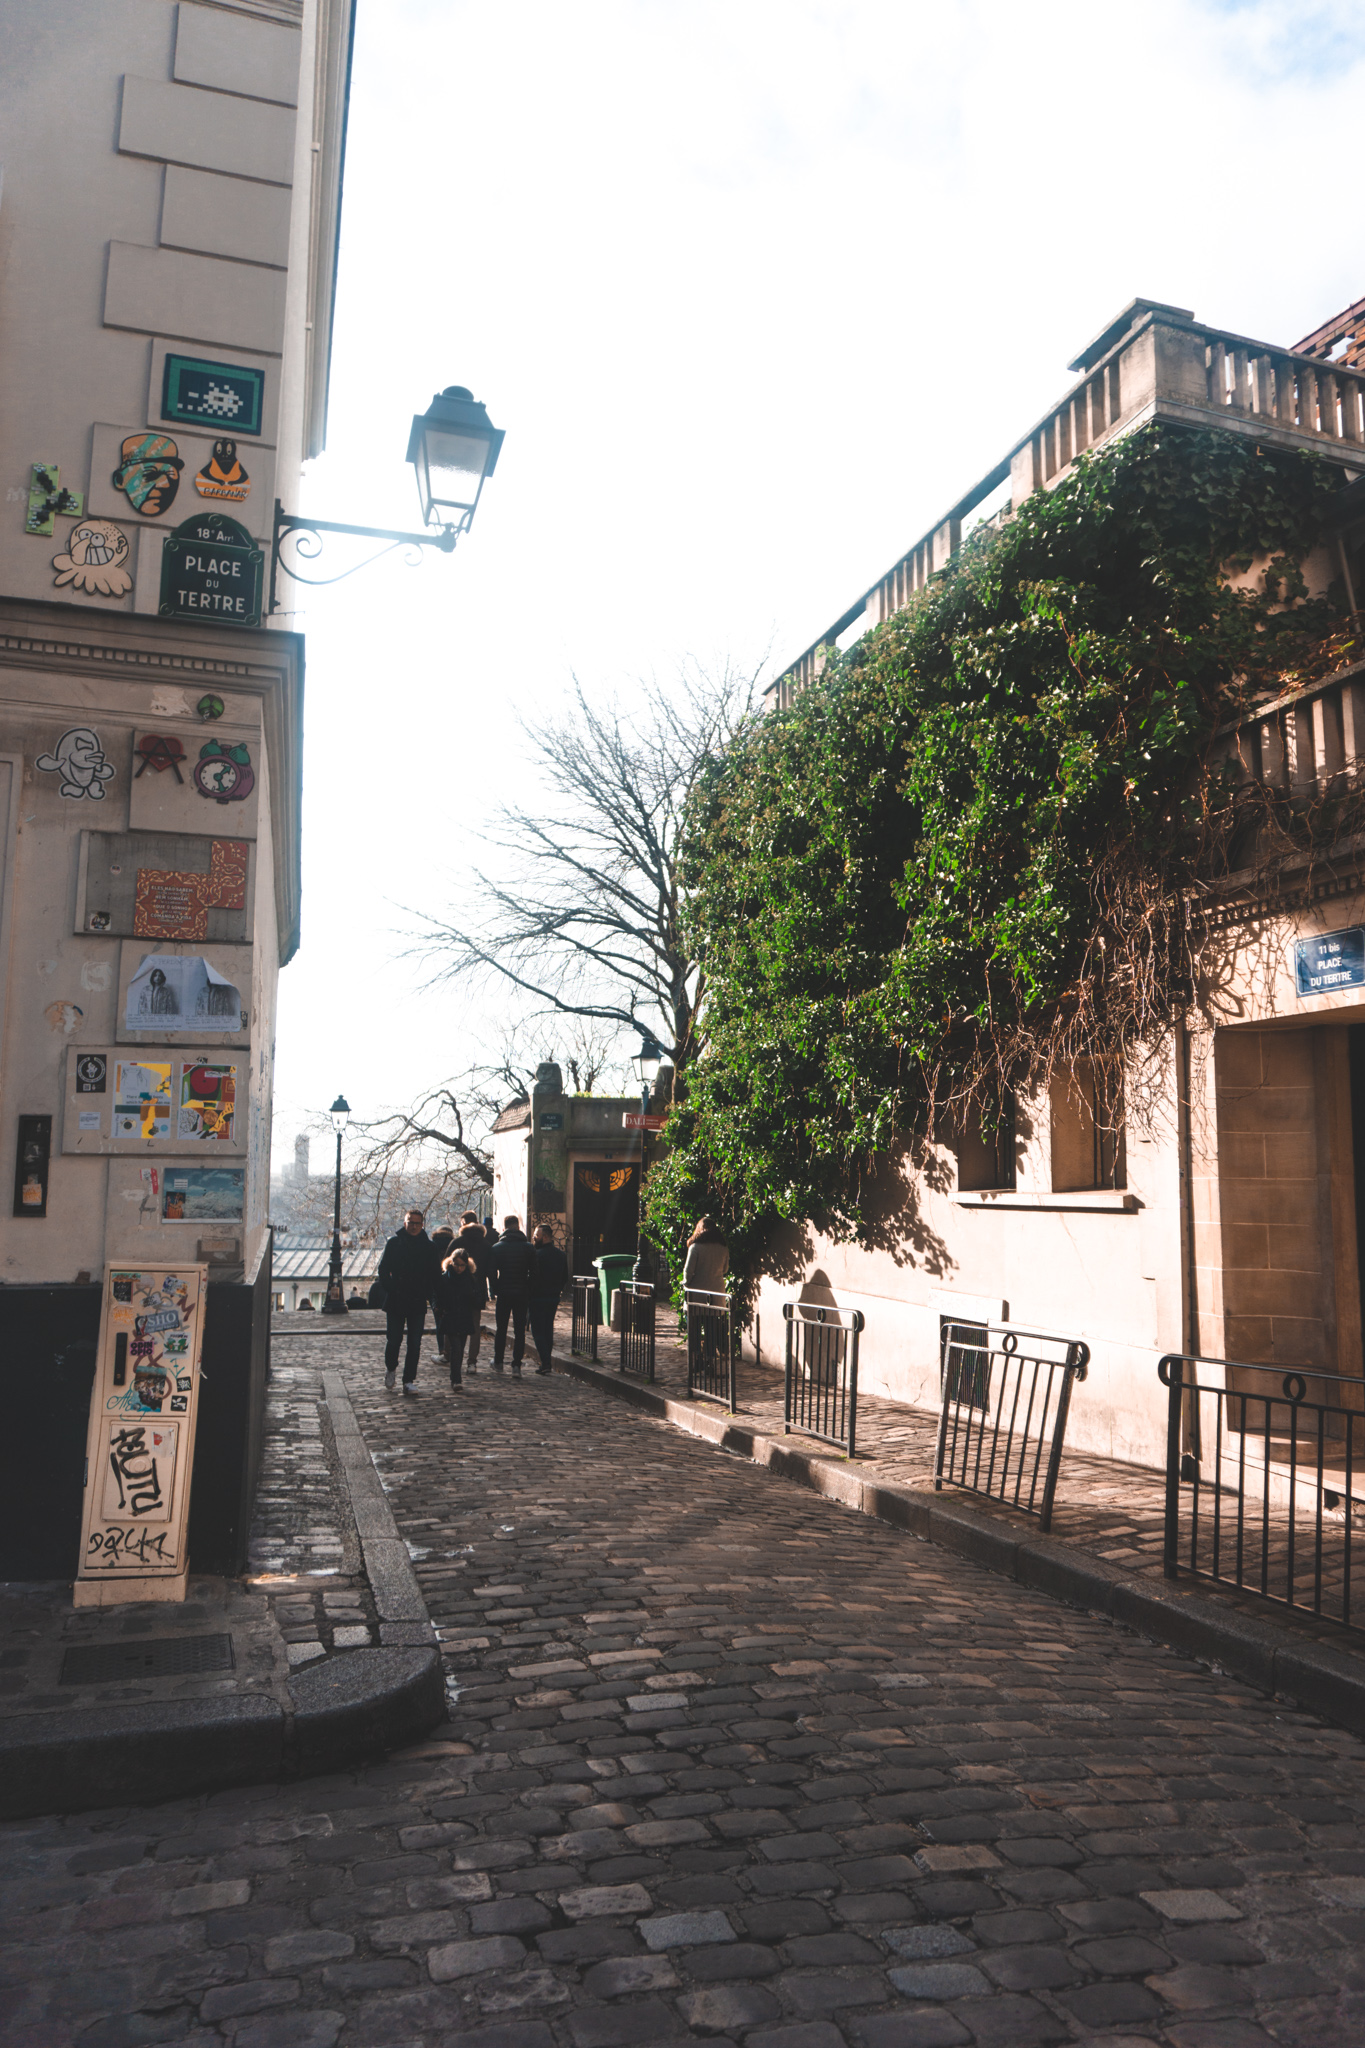 view in a street in montmartre, where to go in montmartre, paris guide, montmartre guide, where to stay in montmare